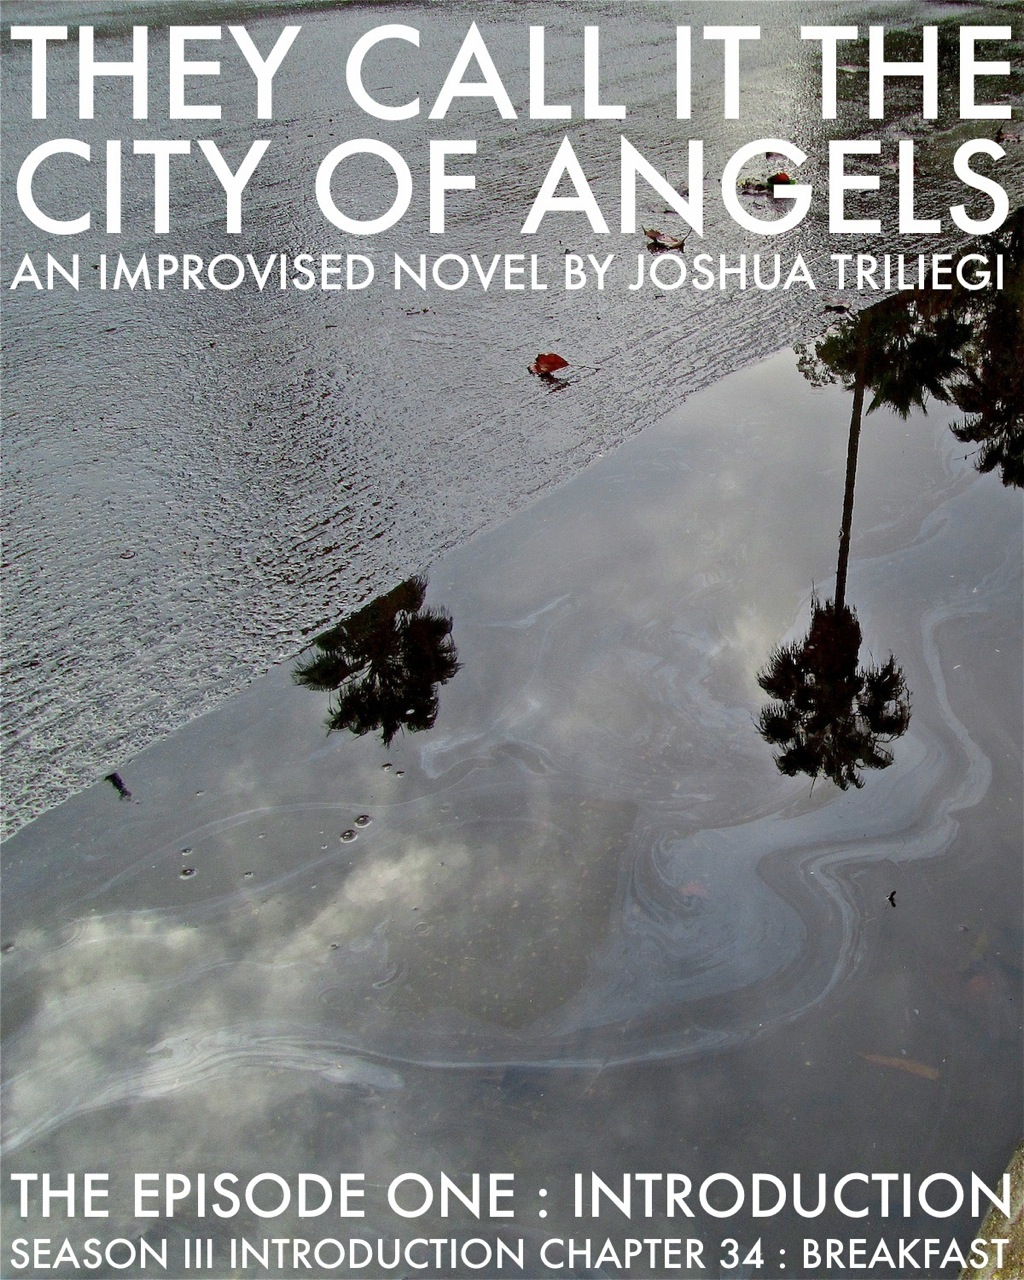 READ EPISODE ONE: THEY CALL IT THE CITY OF ANGELS